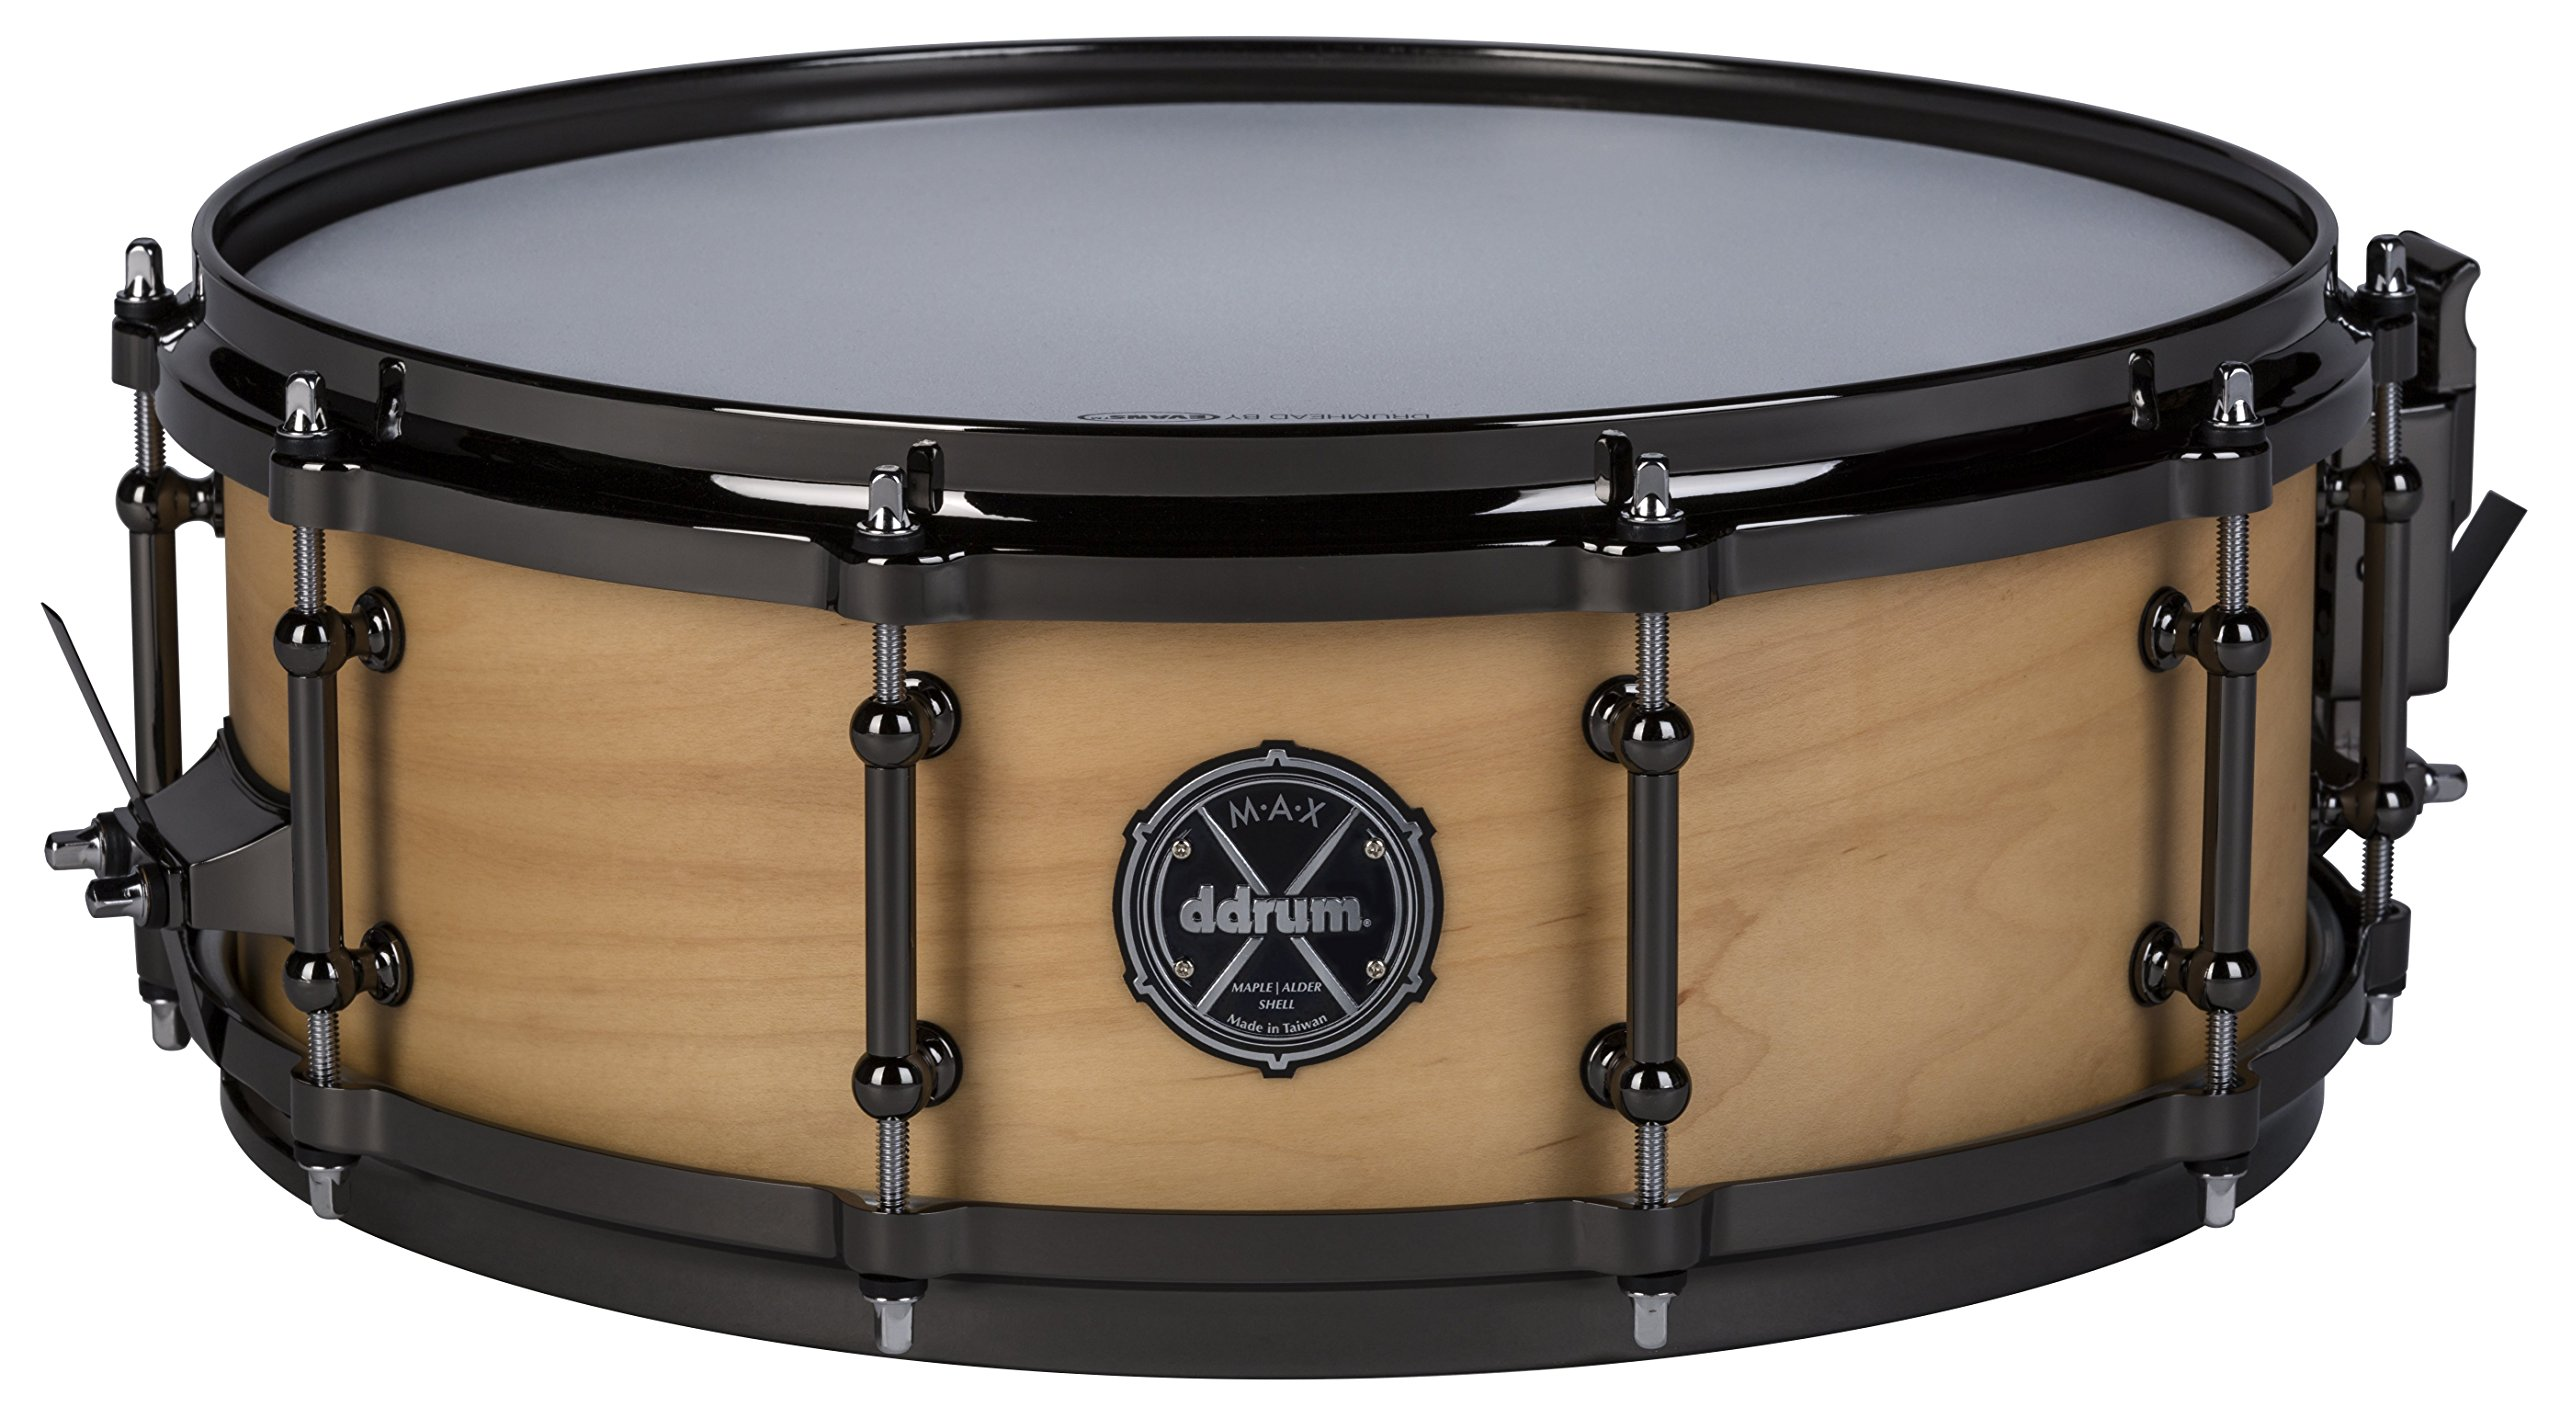 ddrum MAX Series 5x14 Snare Drum-Satin Natural (MAXSD5X14SN)